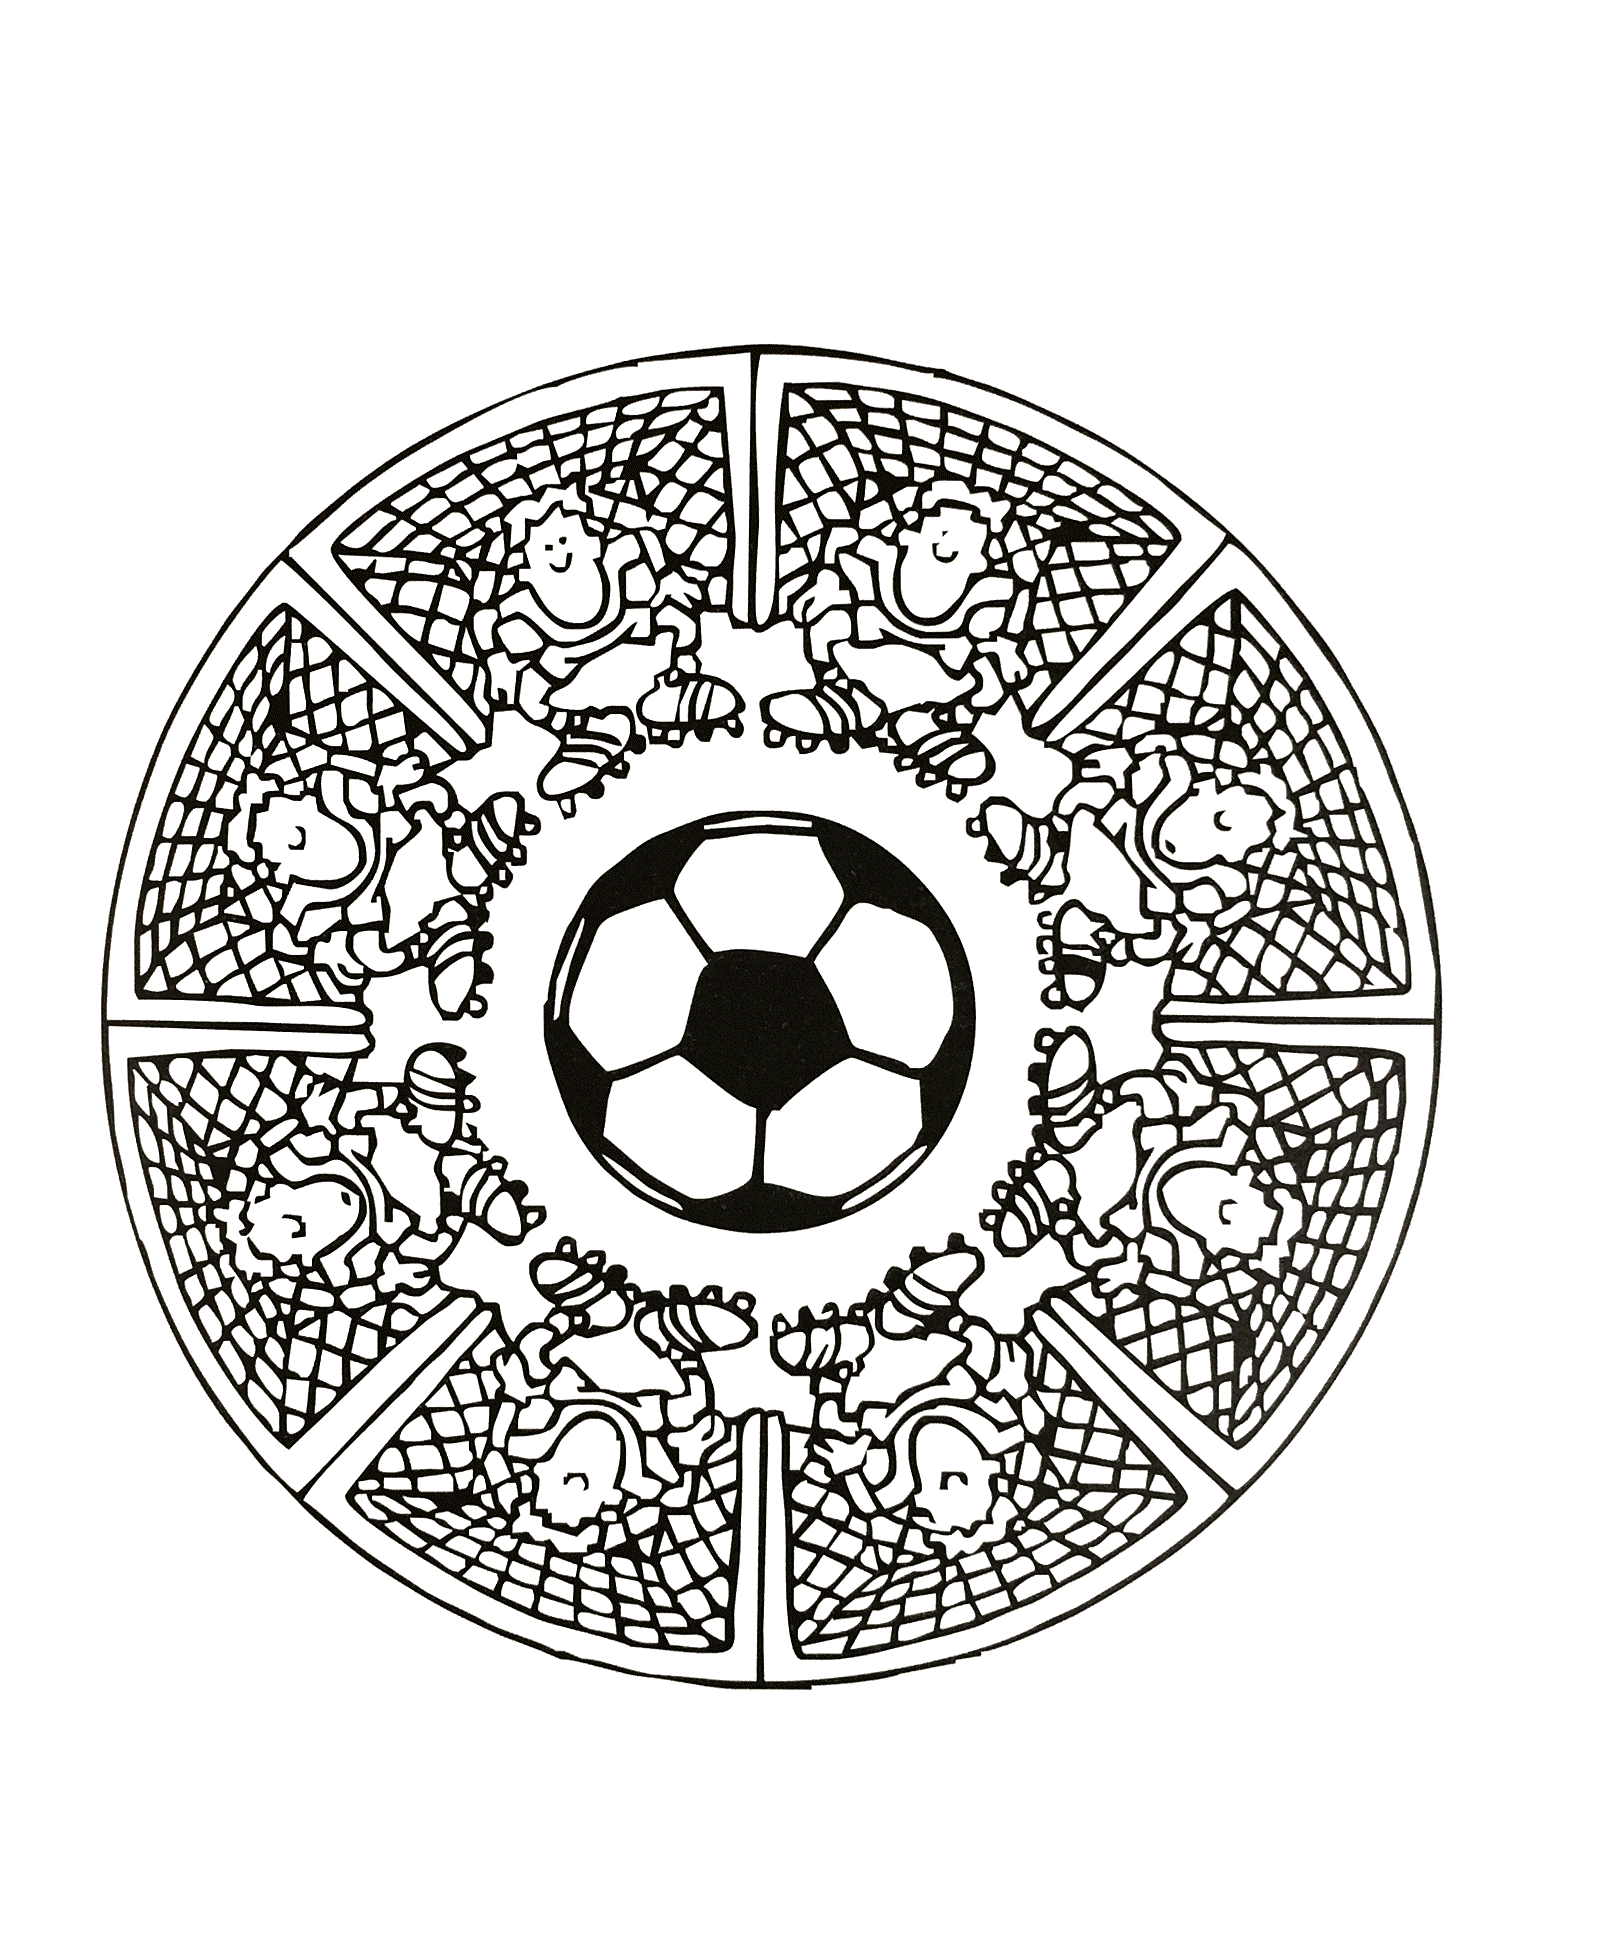 free mandalas page mandalas foot football mandala coloring page for beginners artsy fartsy. Black Bedroom Furniture Sets. Home Design Ideas